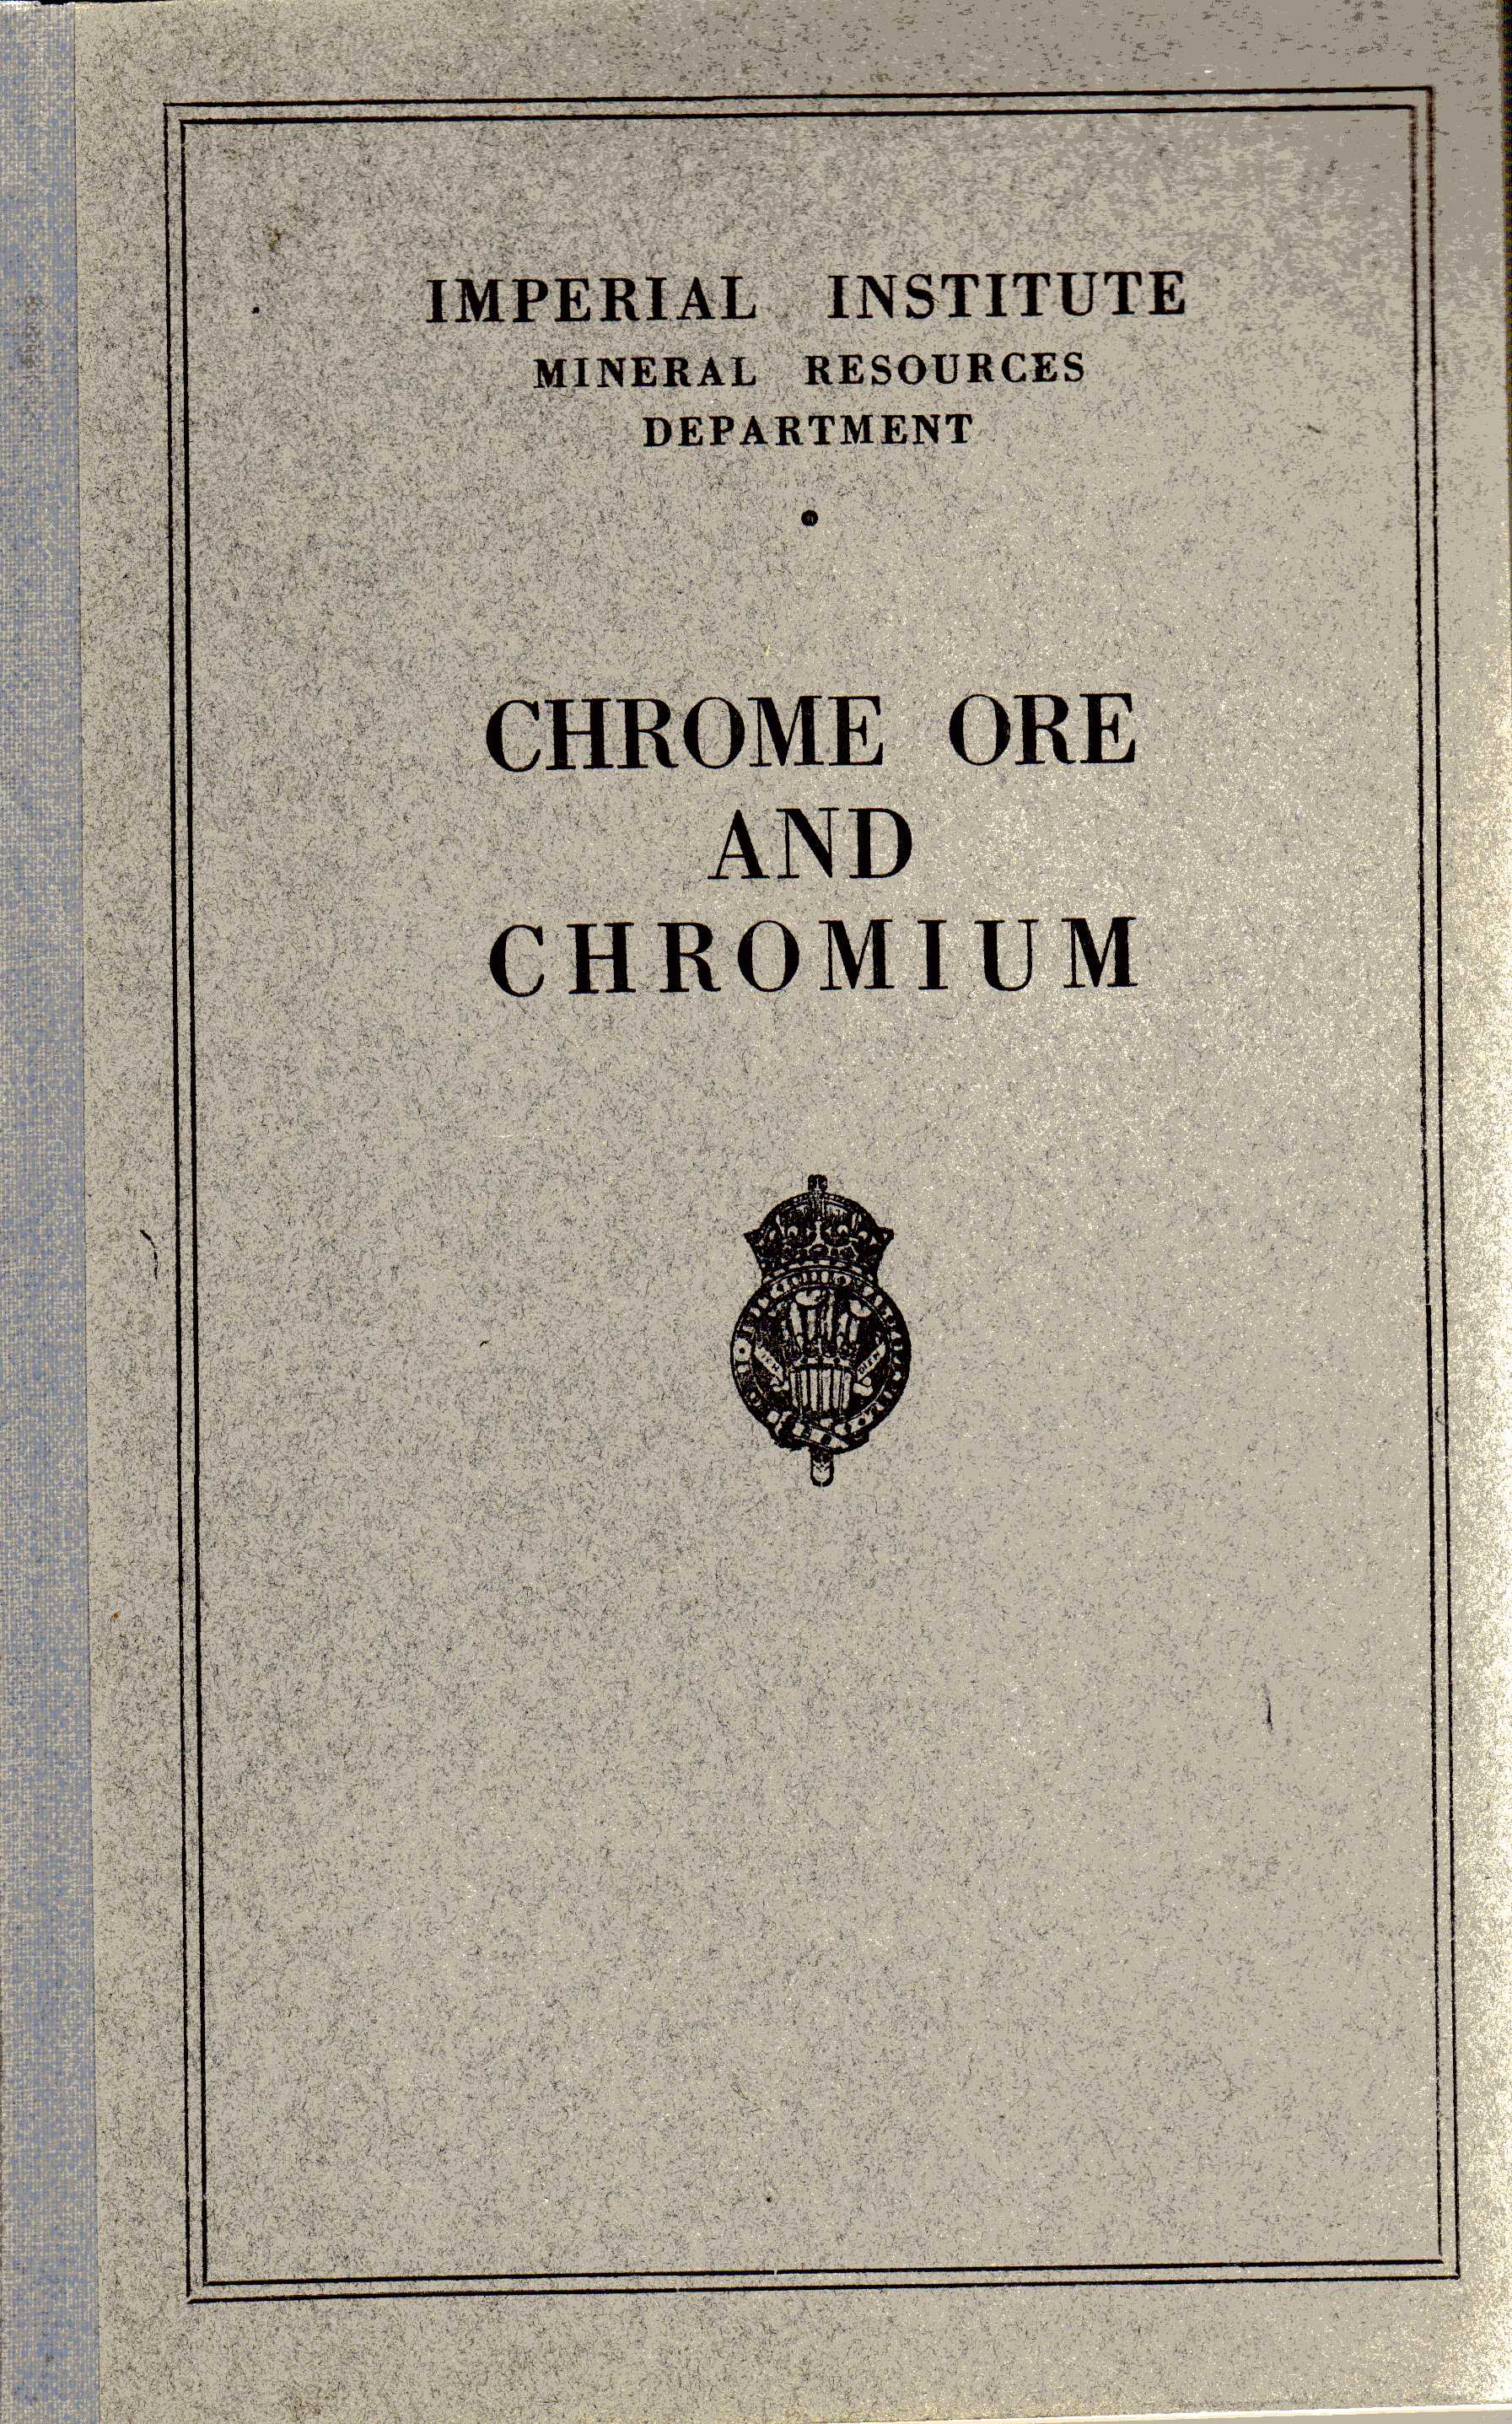 Reports on the Mineral Industry of the British Empire and Foreign Countries / Chrome Ore and Chromium